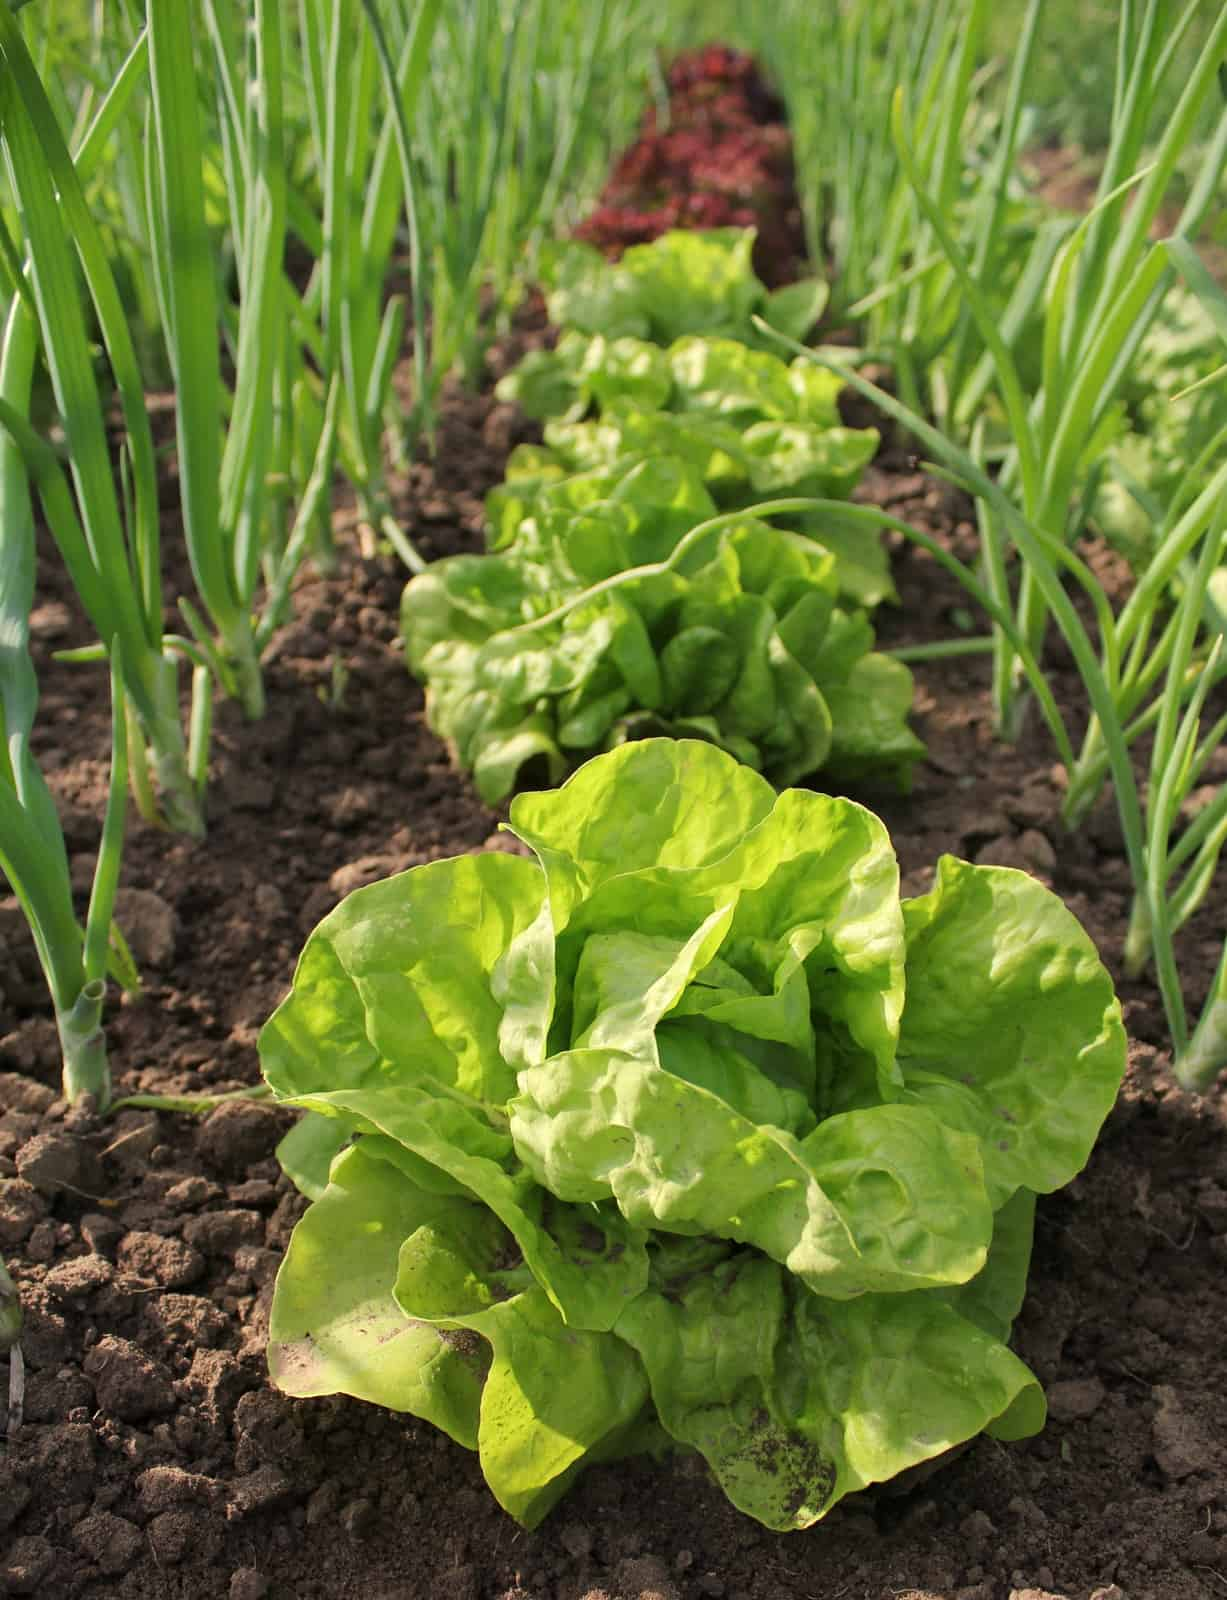 Intercropping lettuce and onions